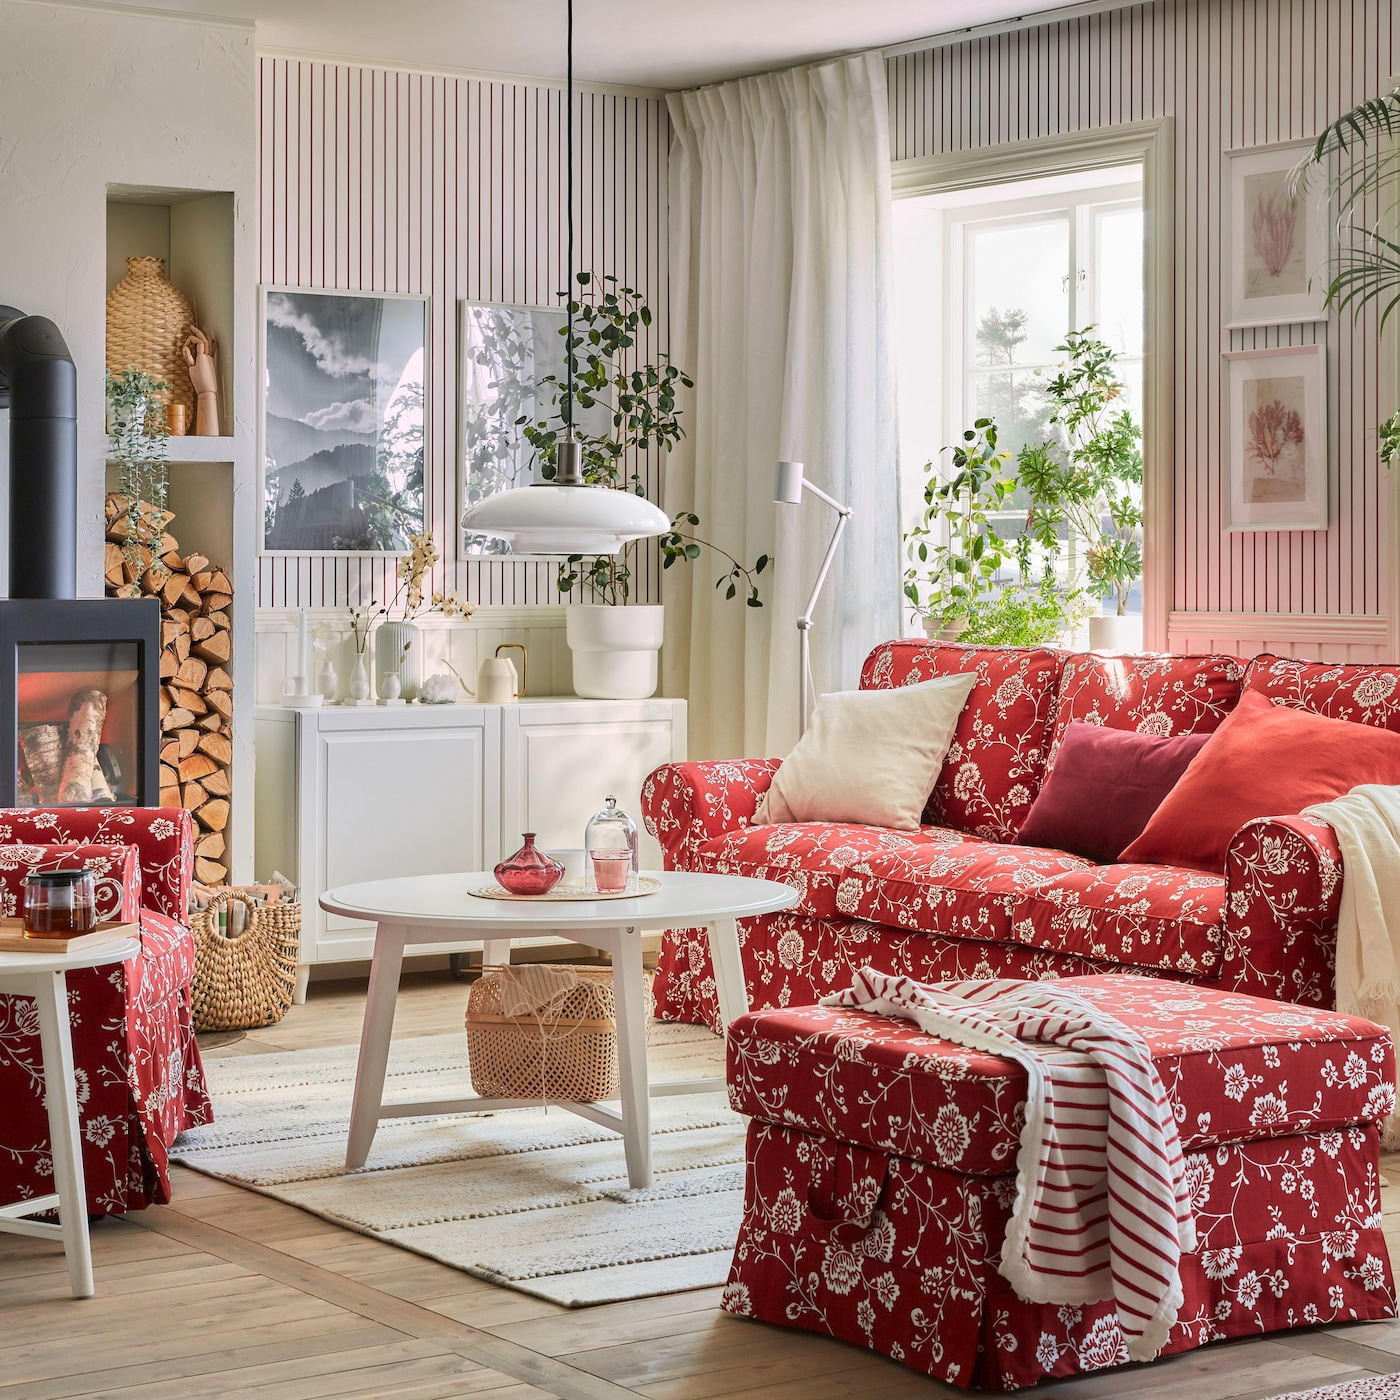 A living room with EKTORP sofa, armchair and footstool in red/white flower pattern and round tables and a sideboard in white.